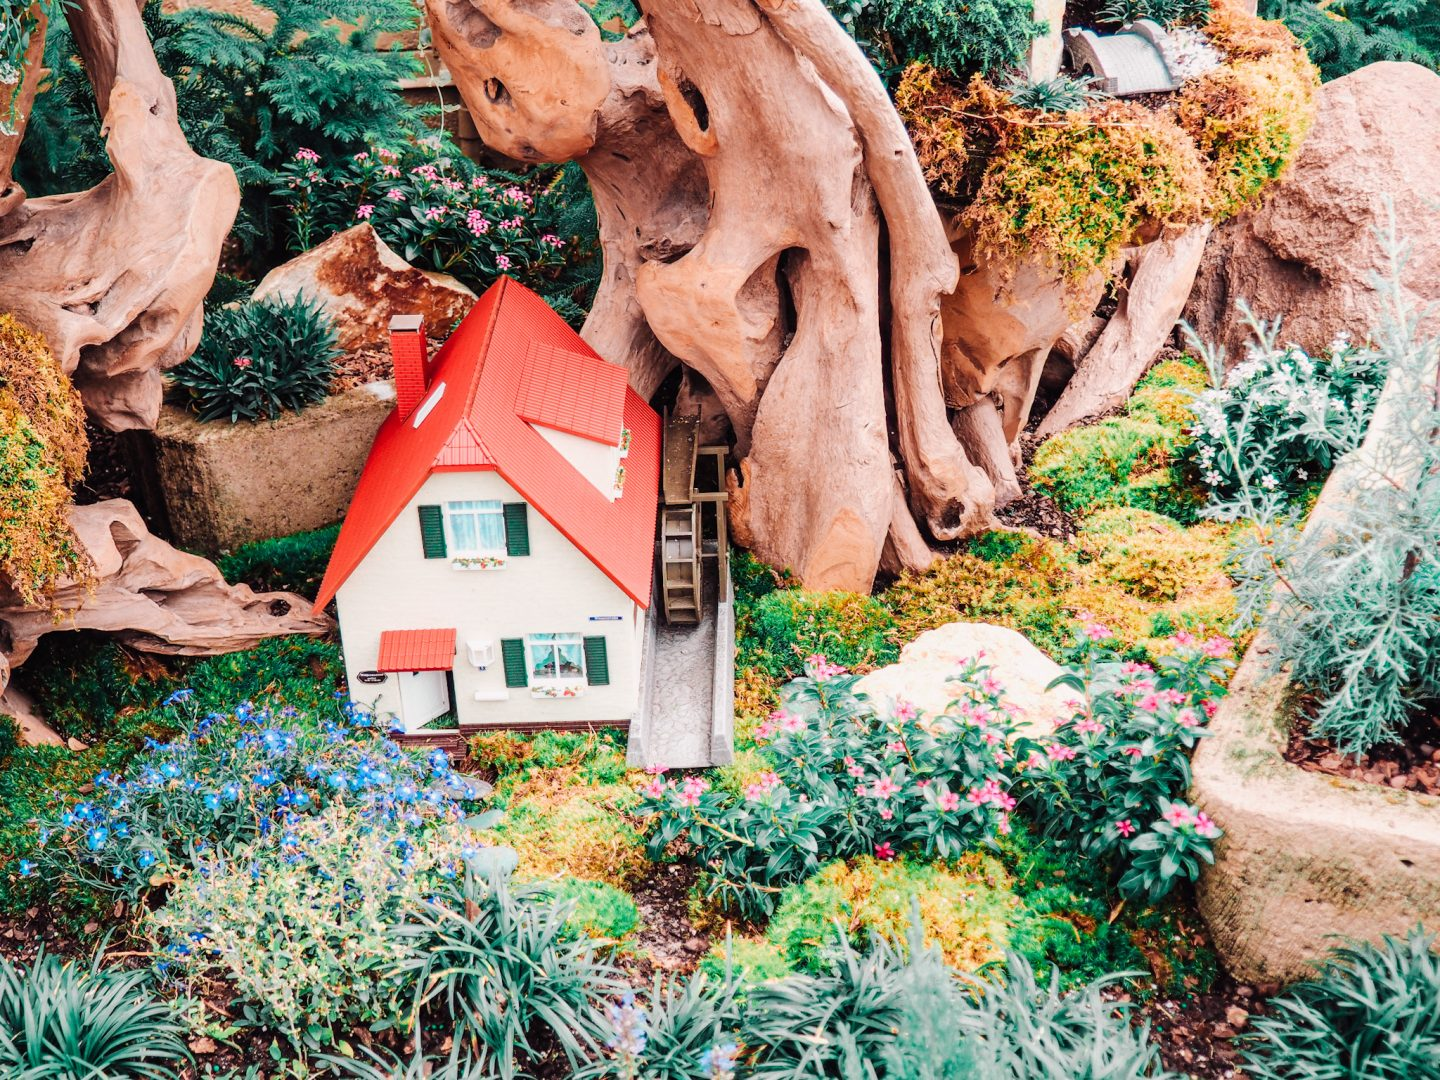 Fairy Gardens in Germany EPCOT